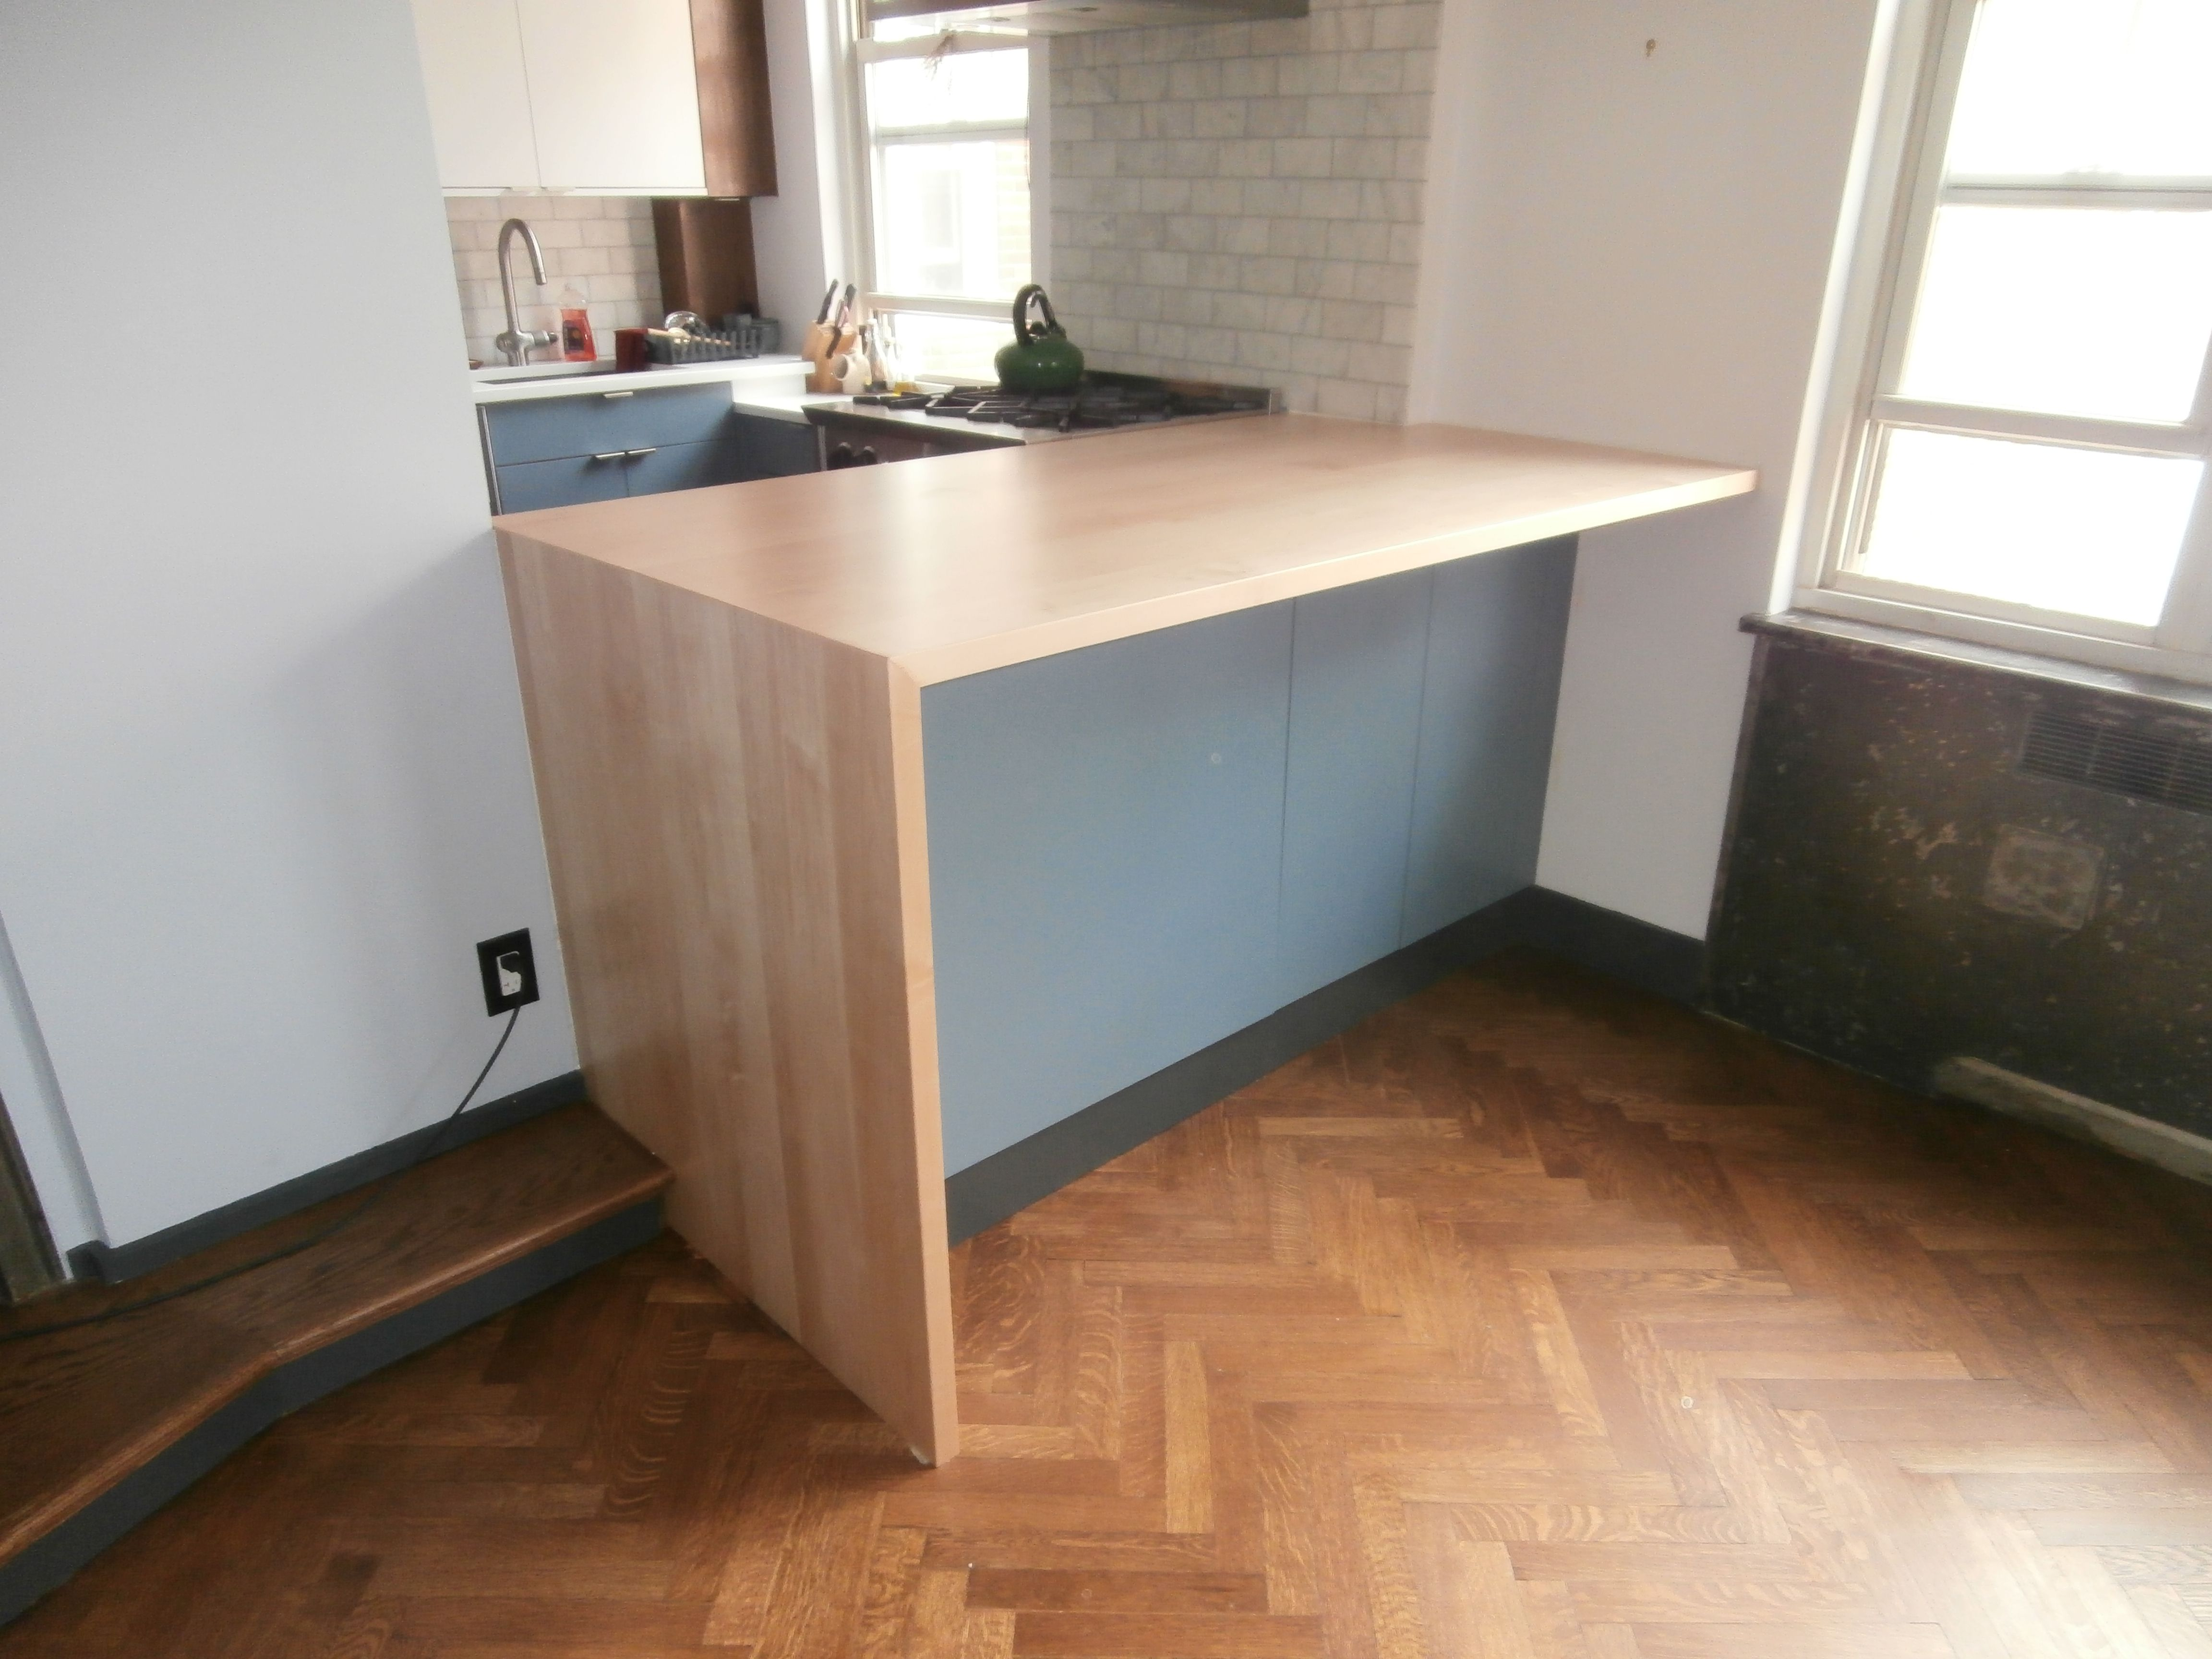 standard plank maple countertop with waterfall edge detail